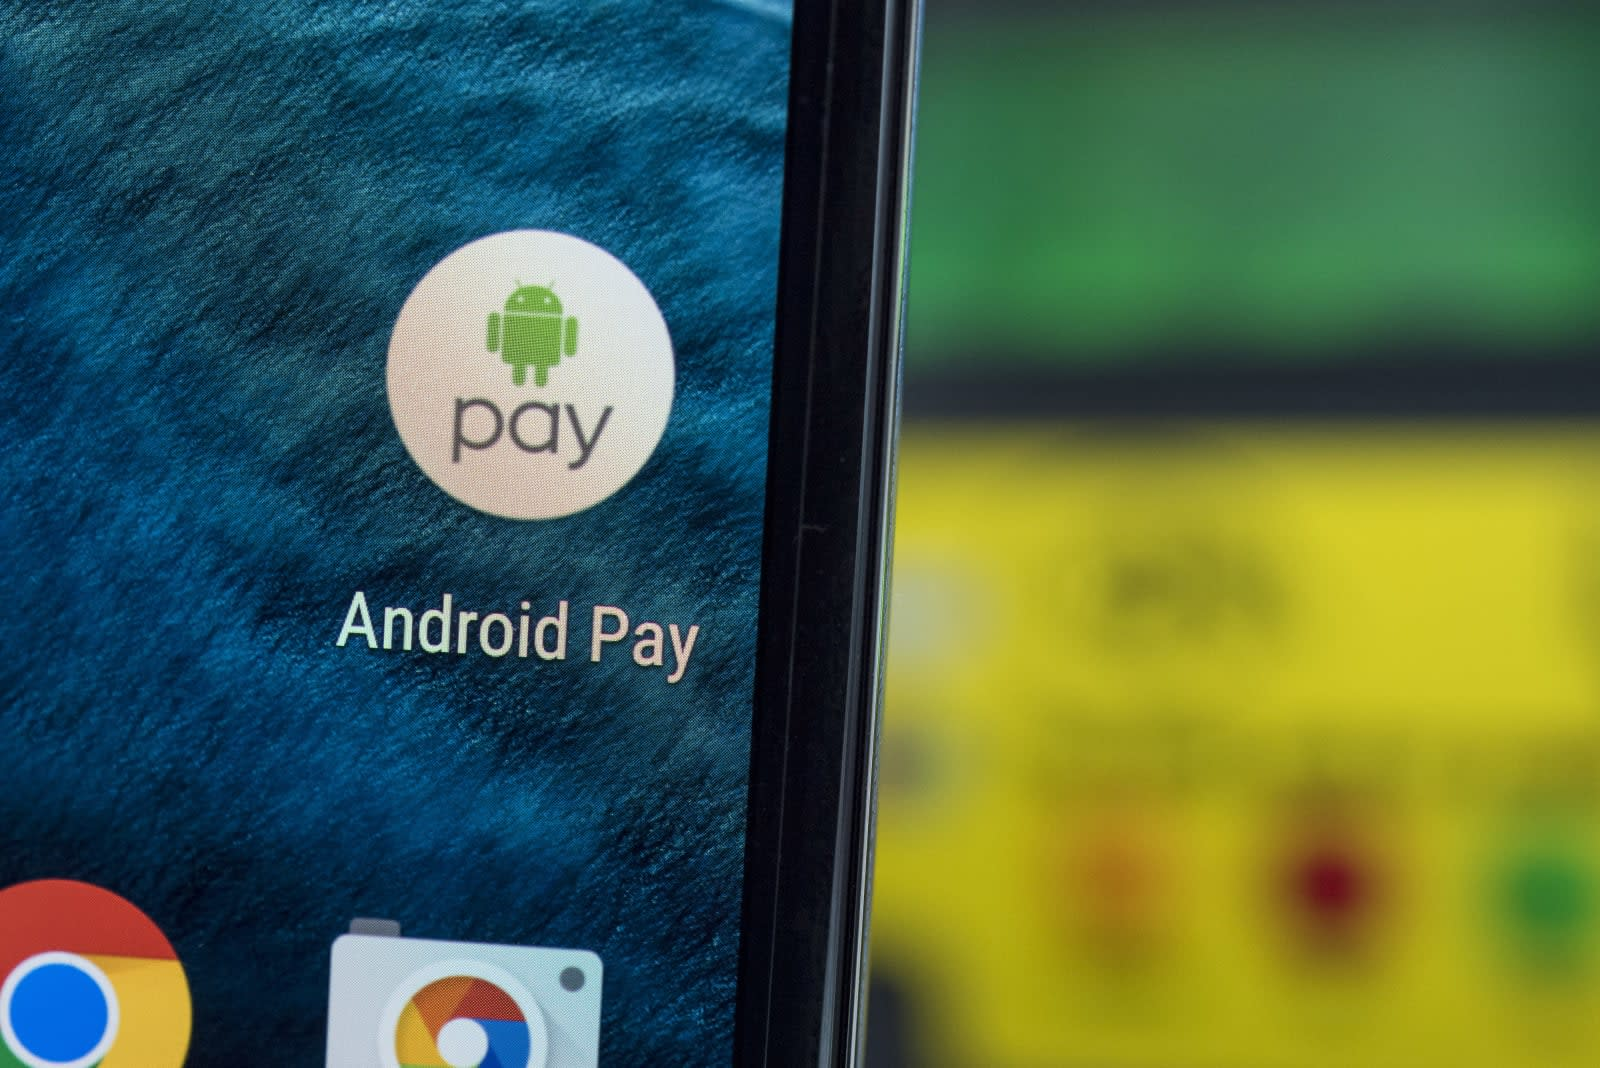 RBS, NatWest and Santander now support Android Pay